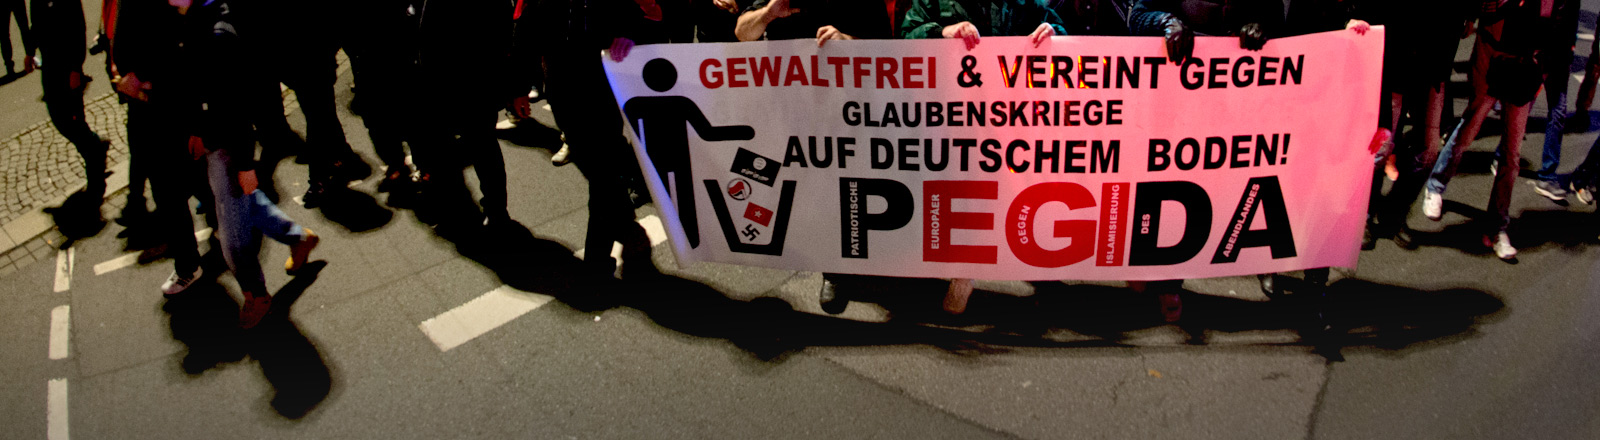 Pegida-Demonstration in Dresden. Demonstranten halt ein Plakat hoch.